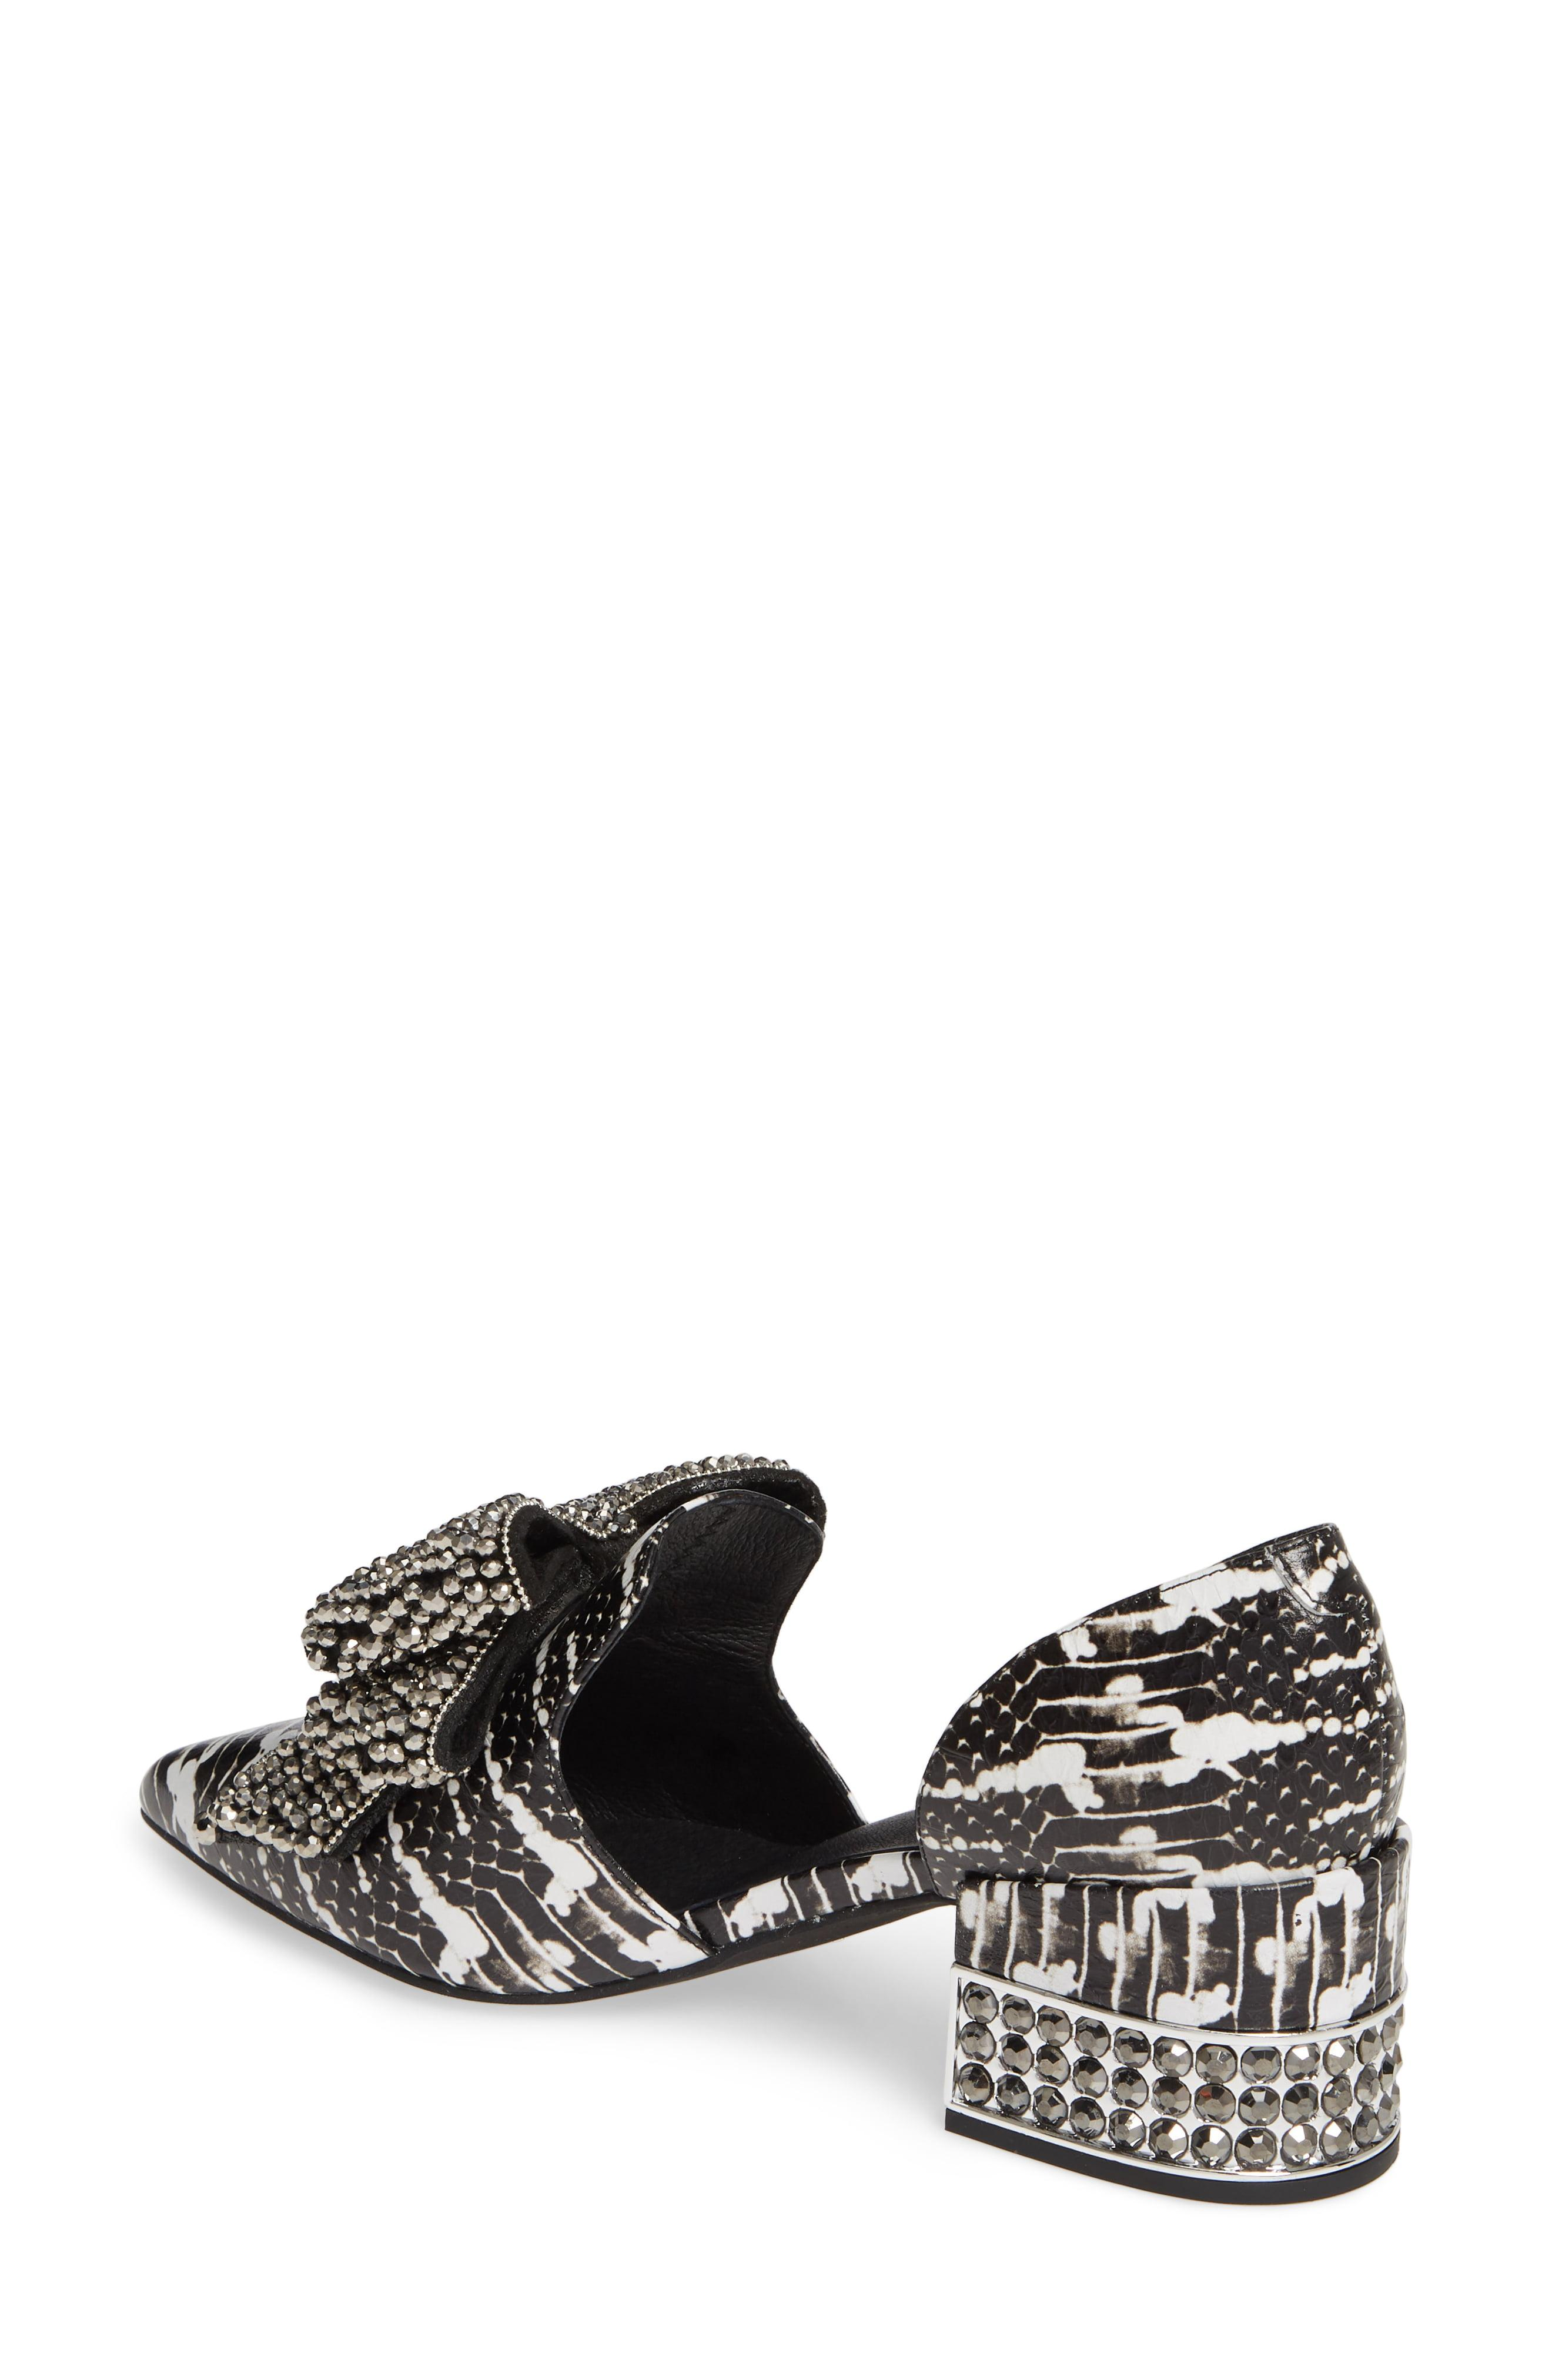 c3a1cff366a Jeffrey Campbell - Black Valenti Embellished Bow Loafer - Lyst. View  fullscreen